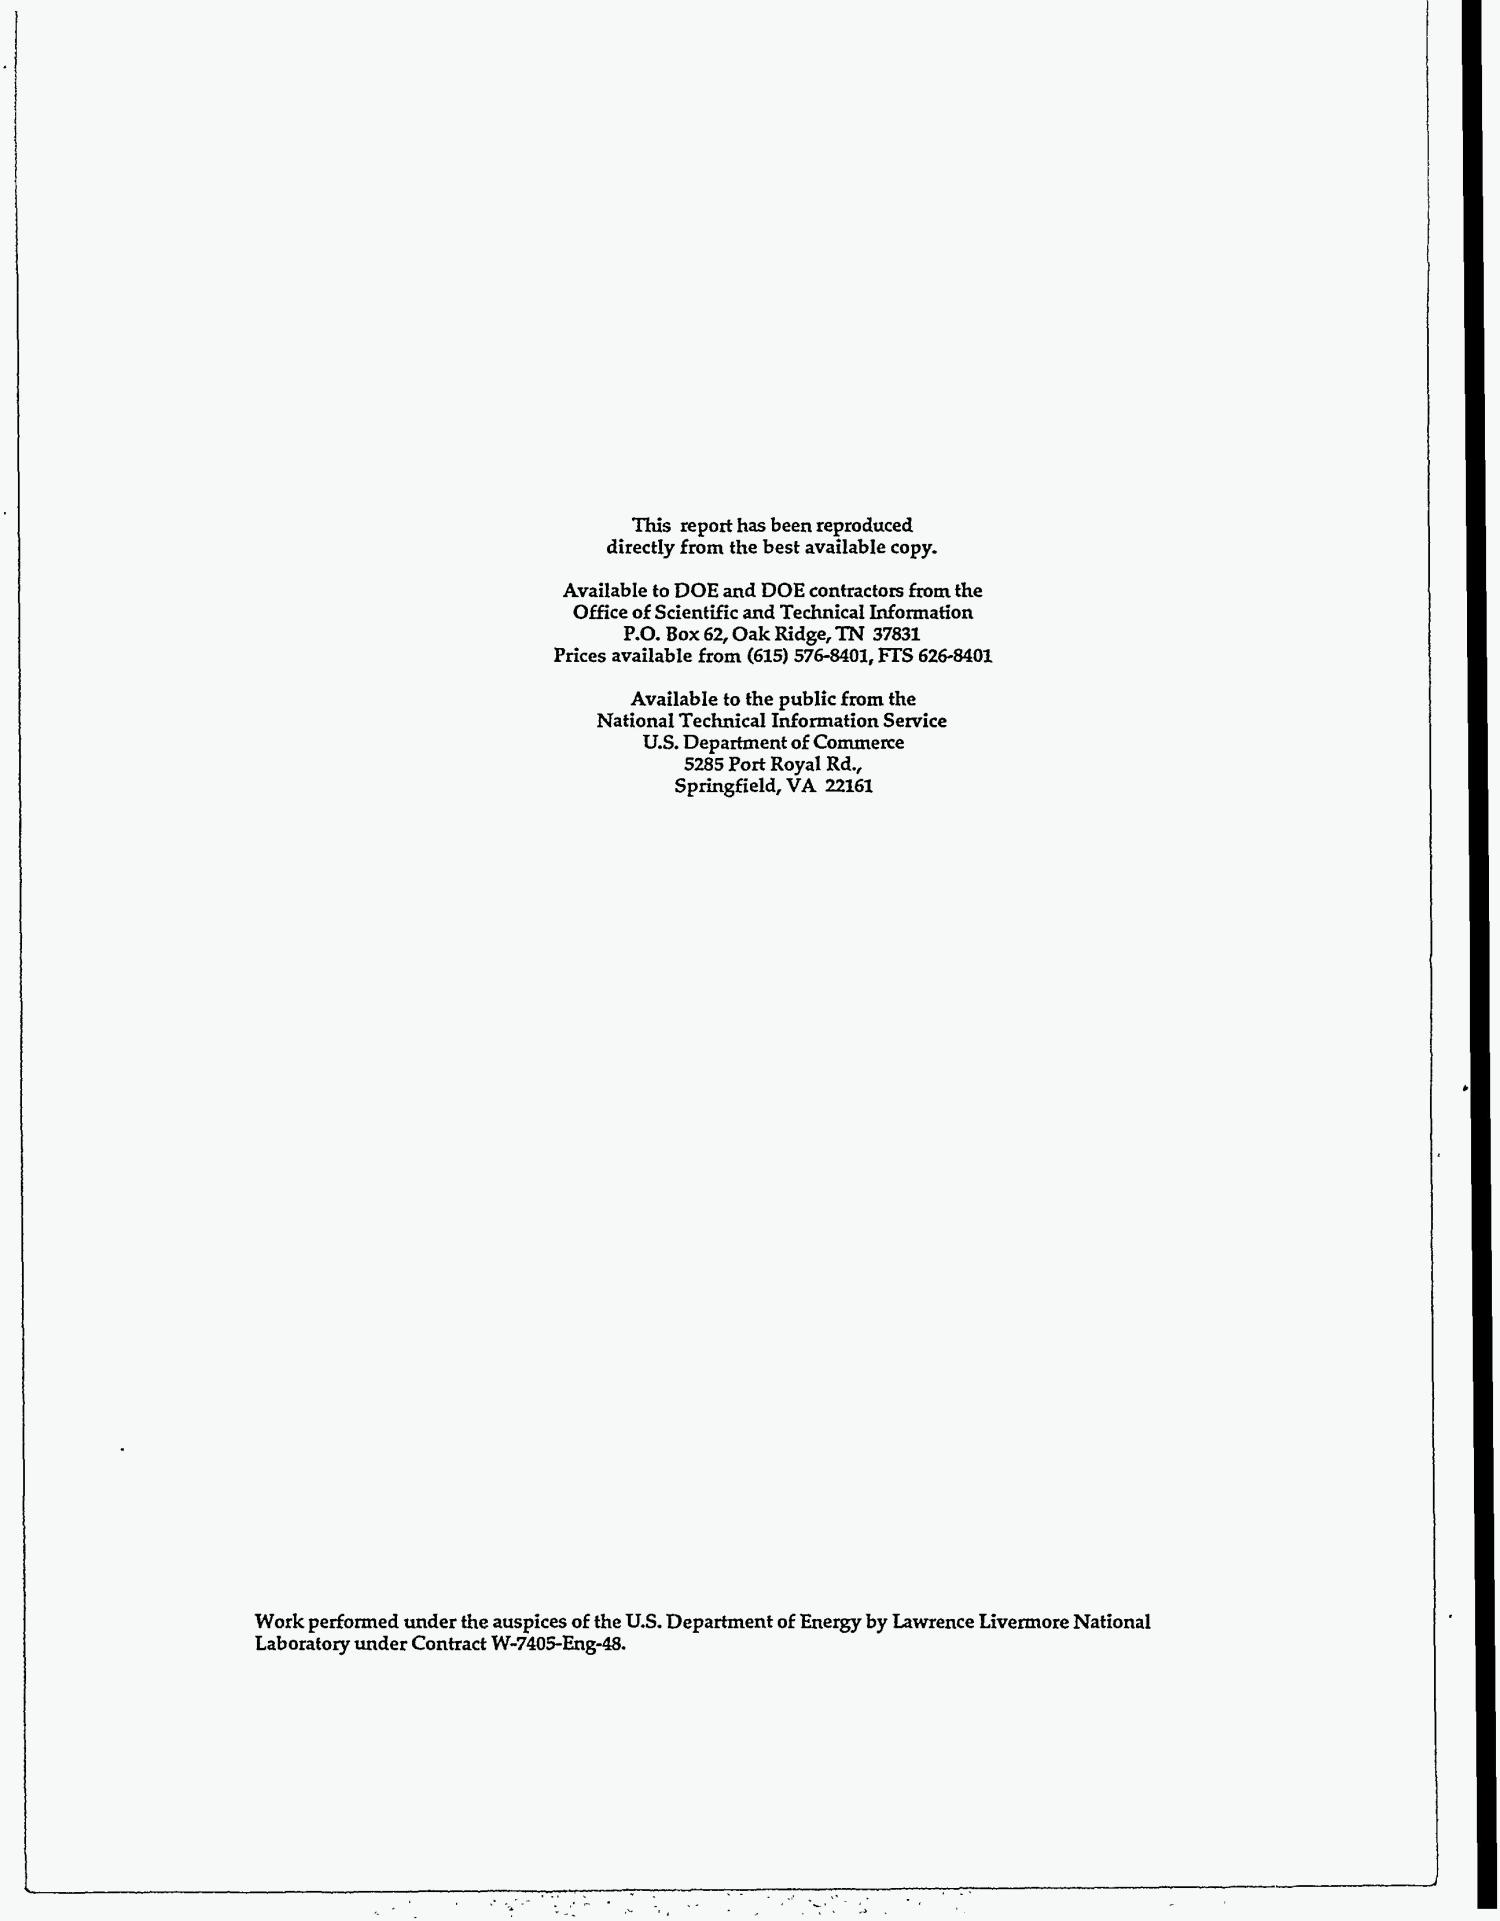 LLNL NESHAPs 1995 annual report                                                                                                      [Sequence #]: 2 of 84